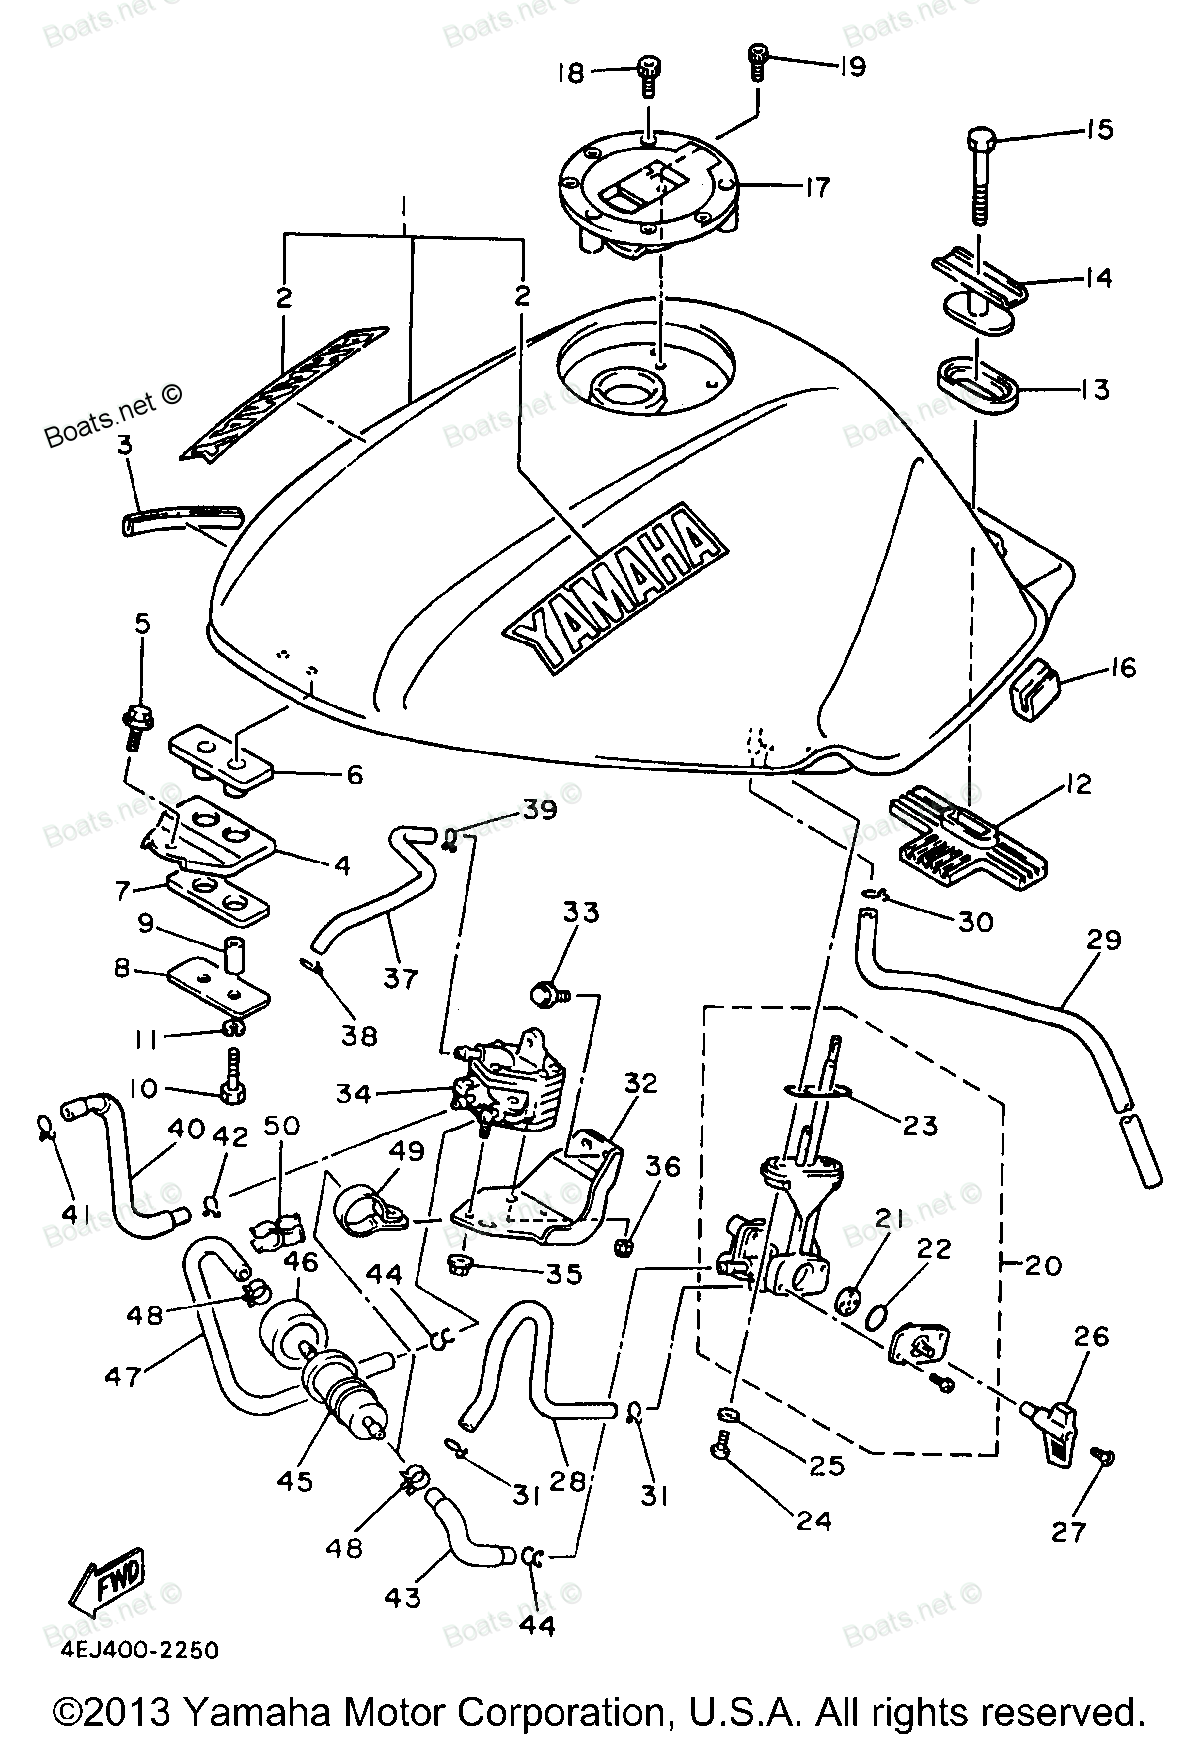 hight resolution of seca 2 yamaha fuel system diagram diagram of 1997 seca ii small engine fuel line sizes motorcycle fuel line diagram